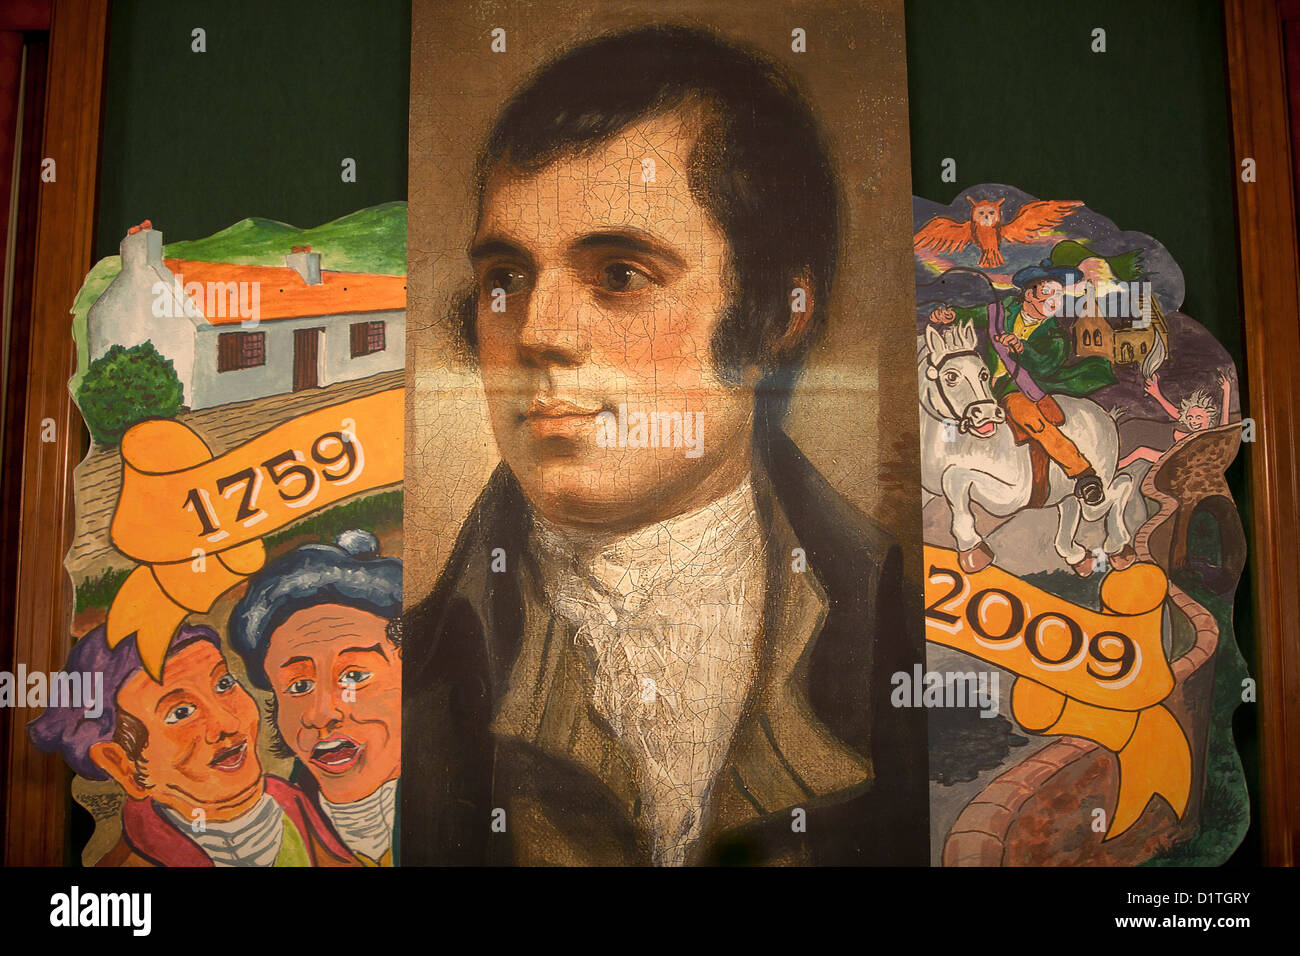 A mural depicting the 200th Anniversary of Robert Burns - Stock Image